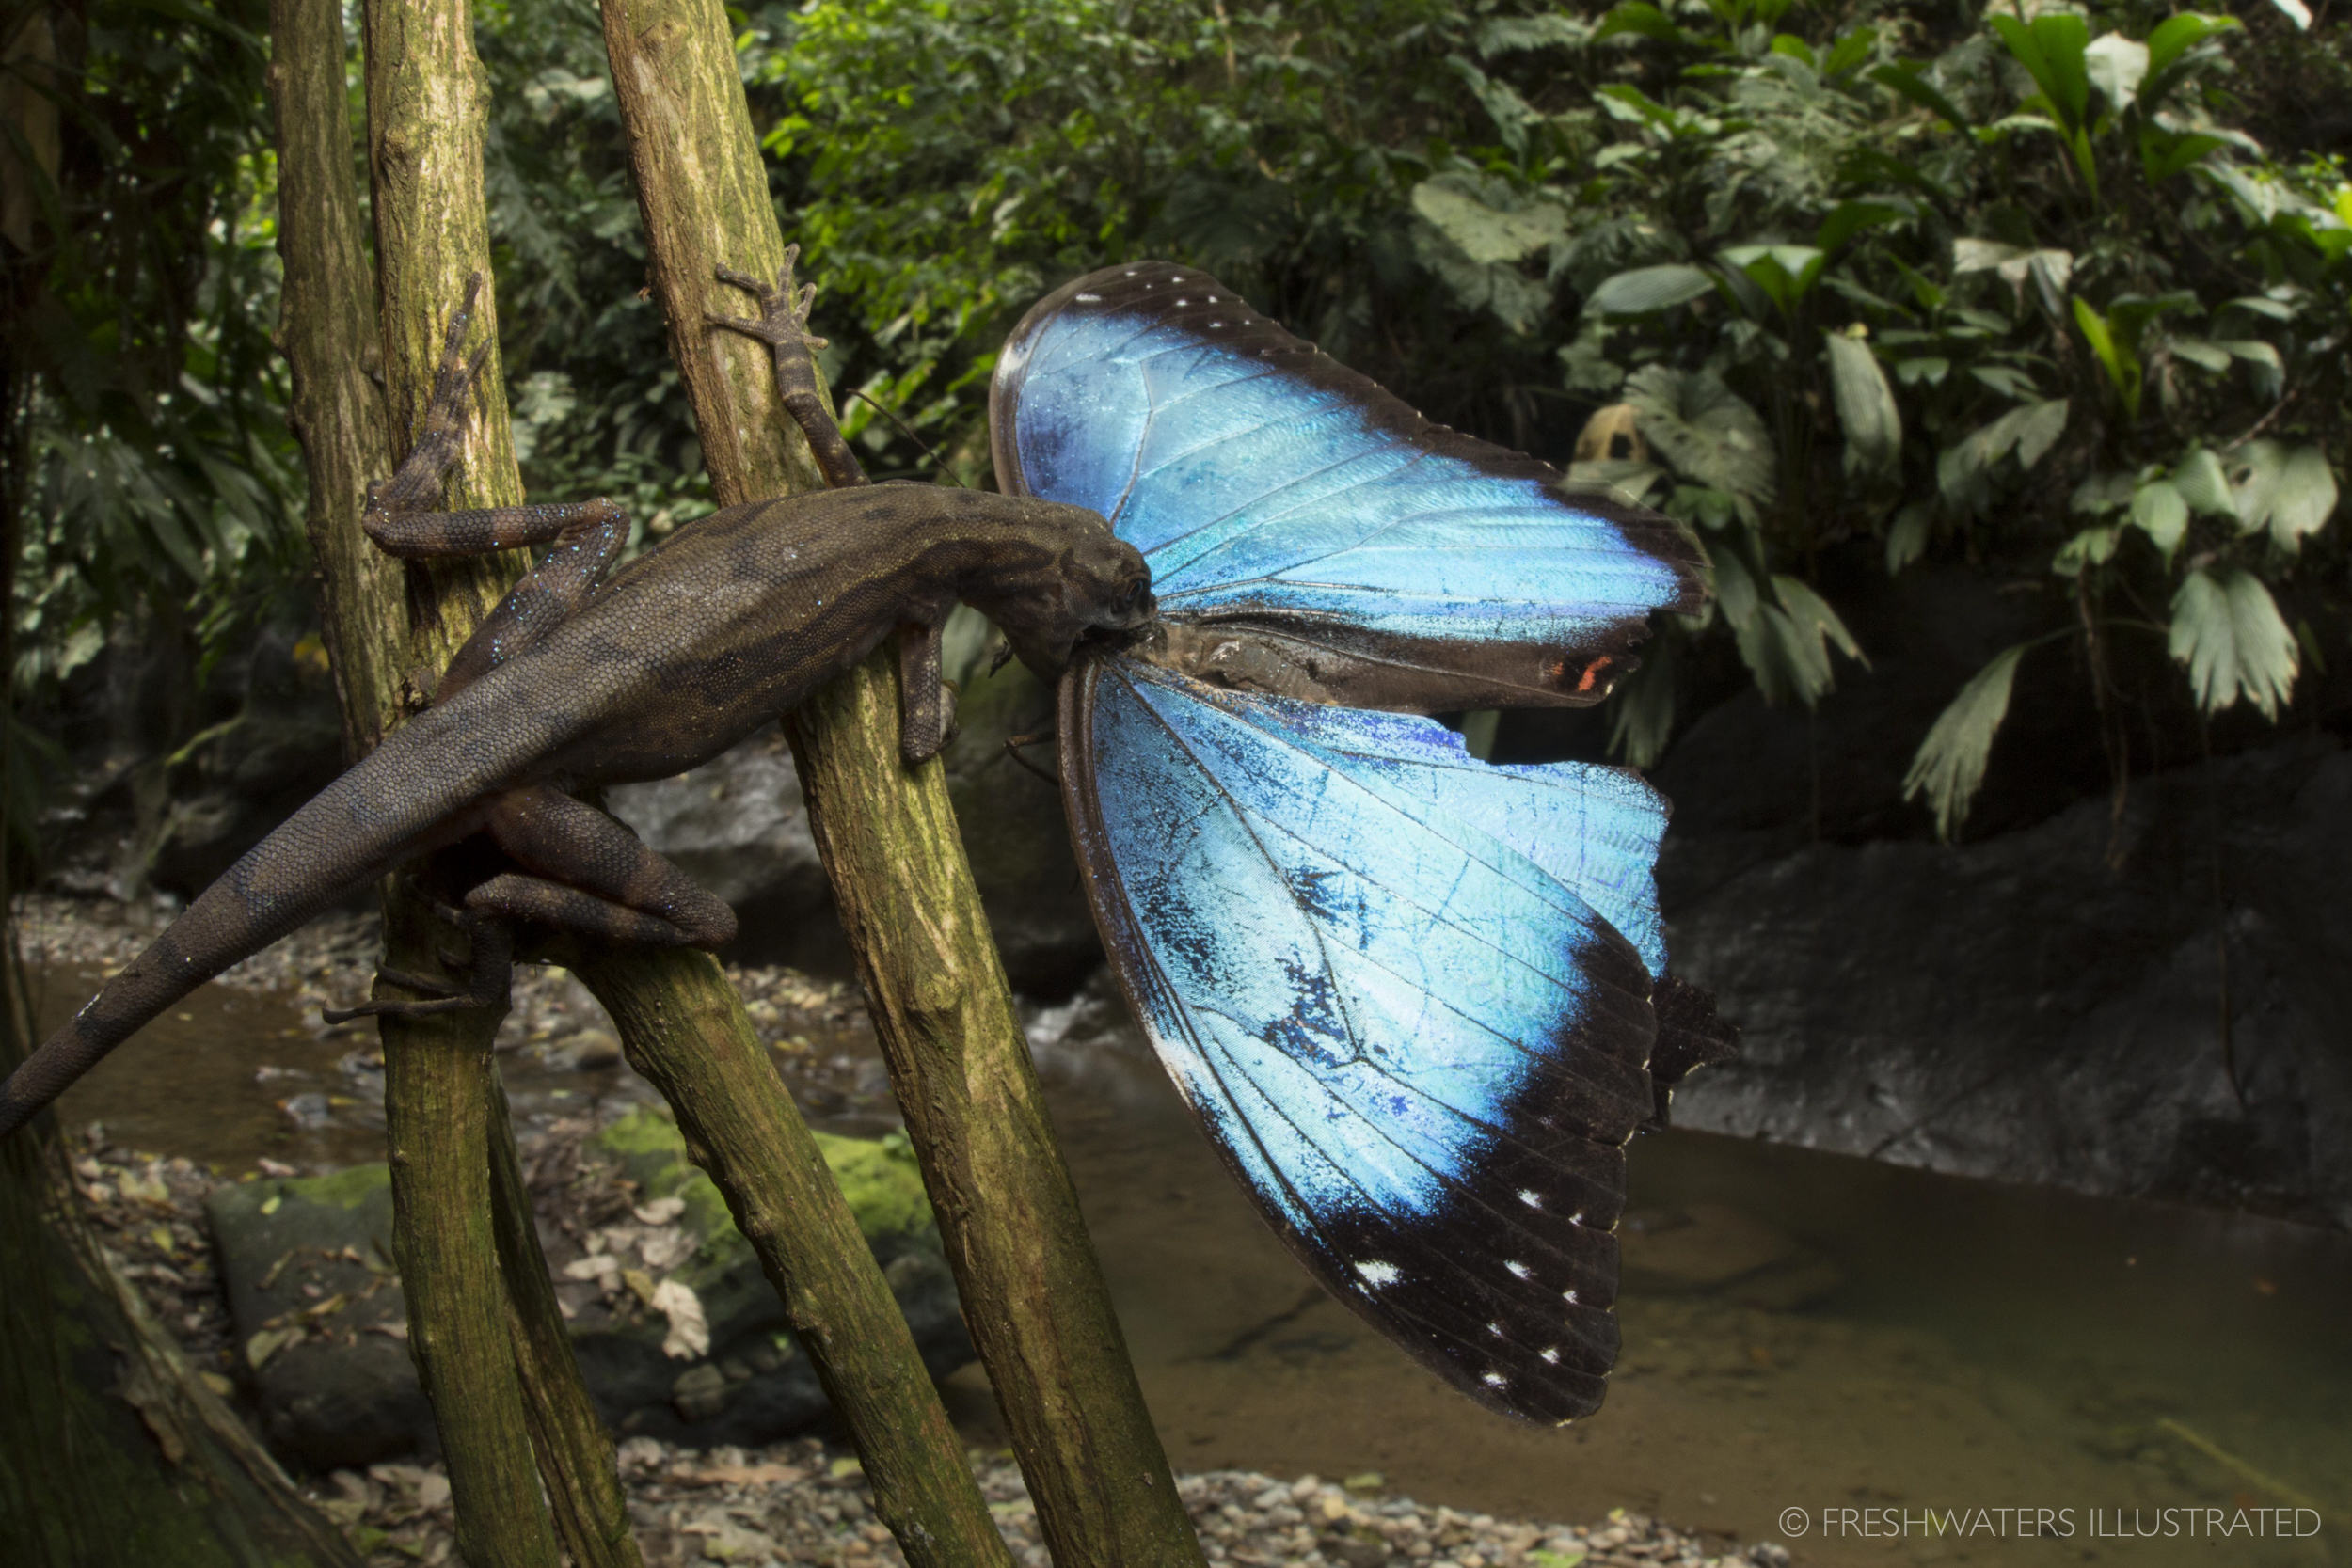 Stream anole (Norops oxylophus) eating a blue morpho butterfly (Morpho sp.) Rio Carbon, Costa Rica